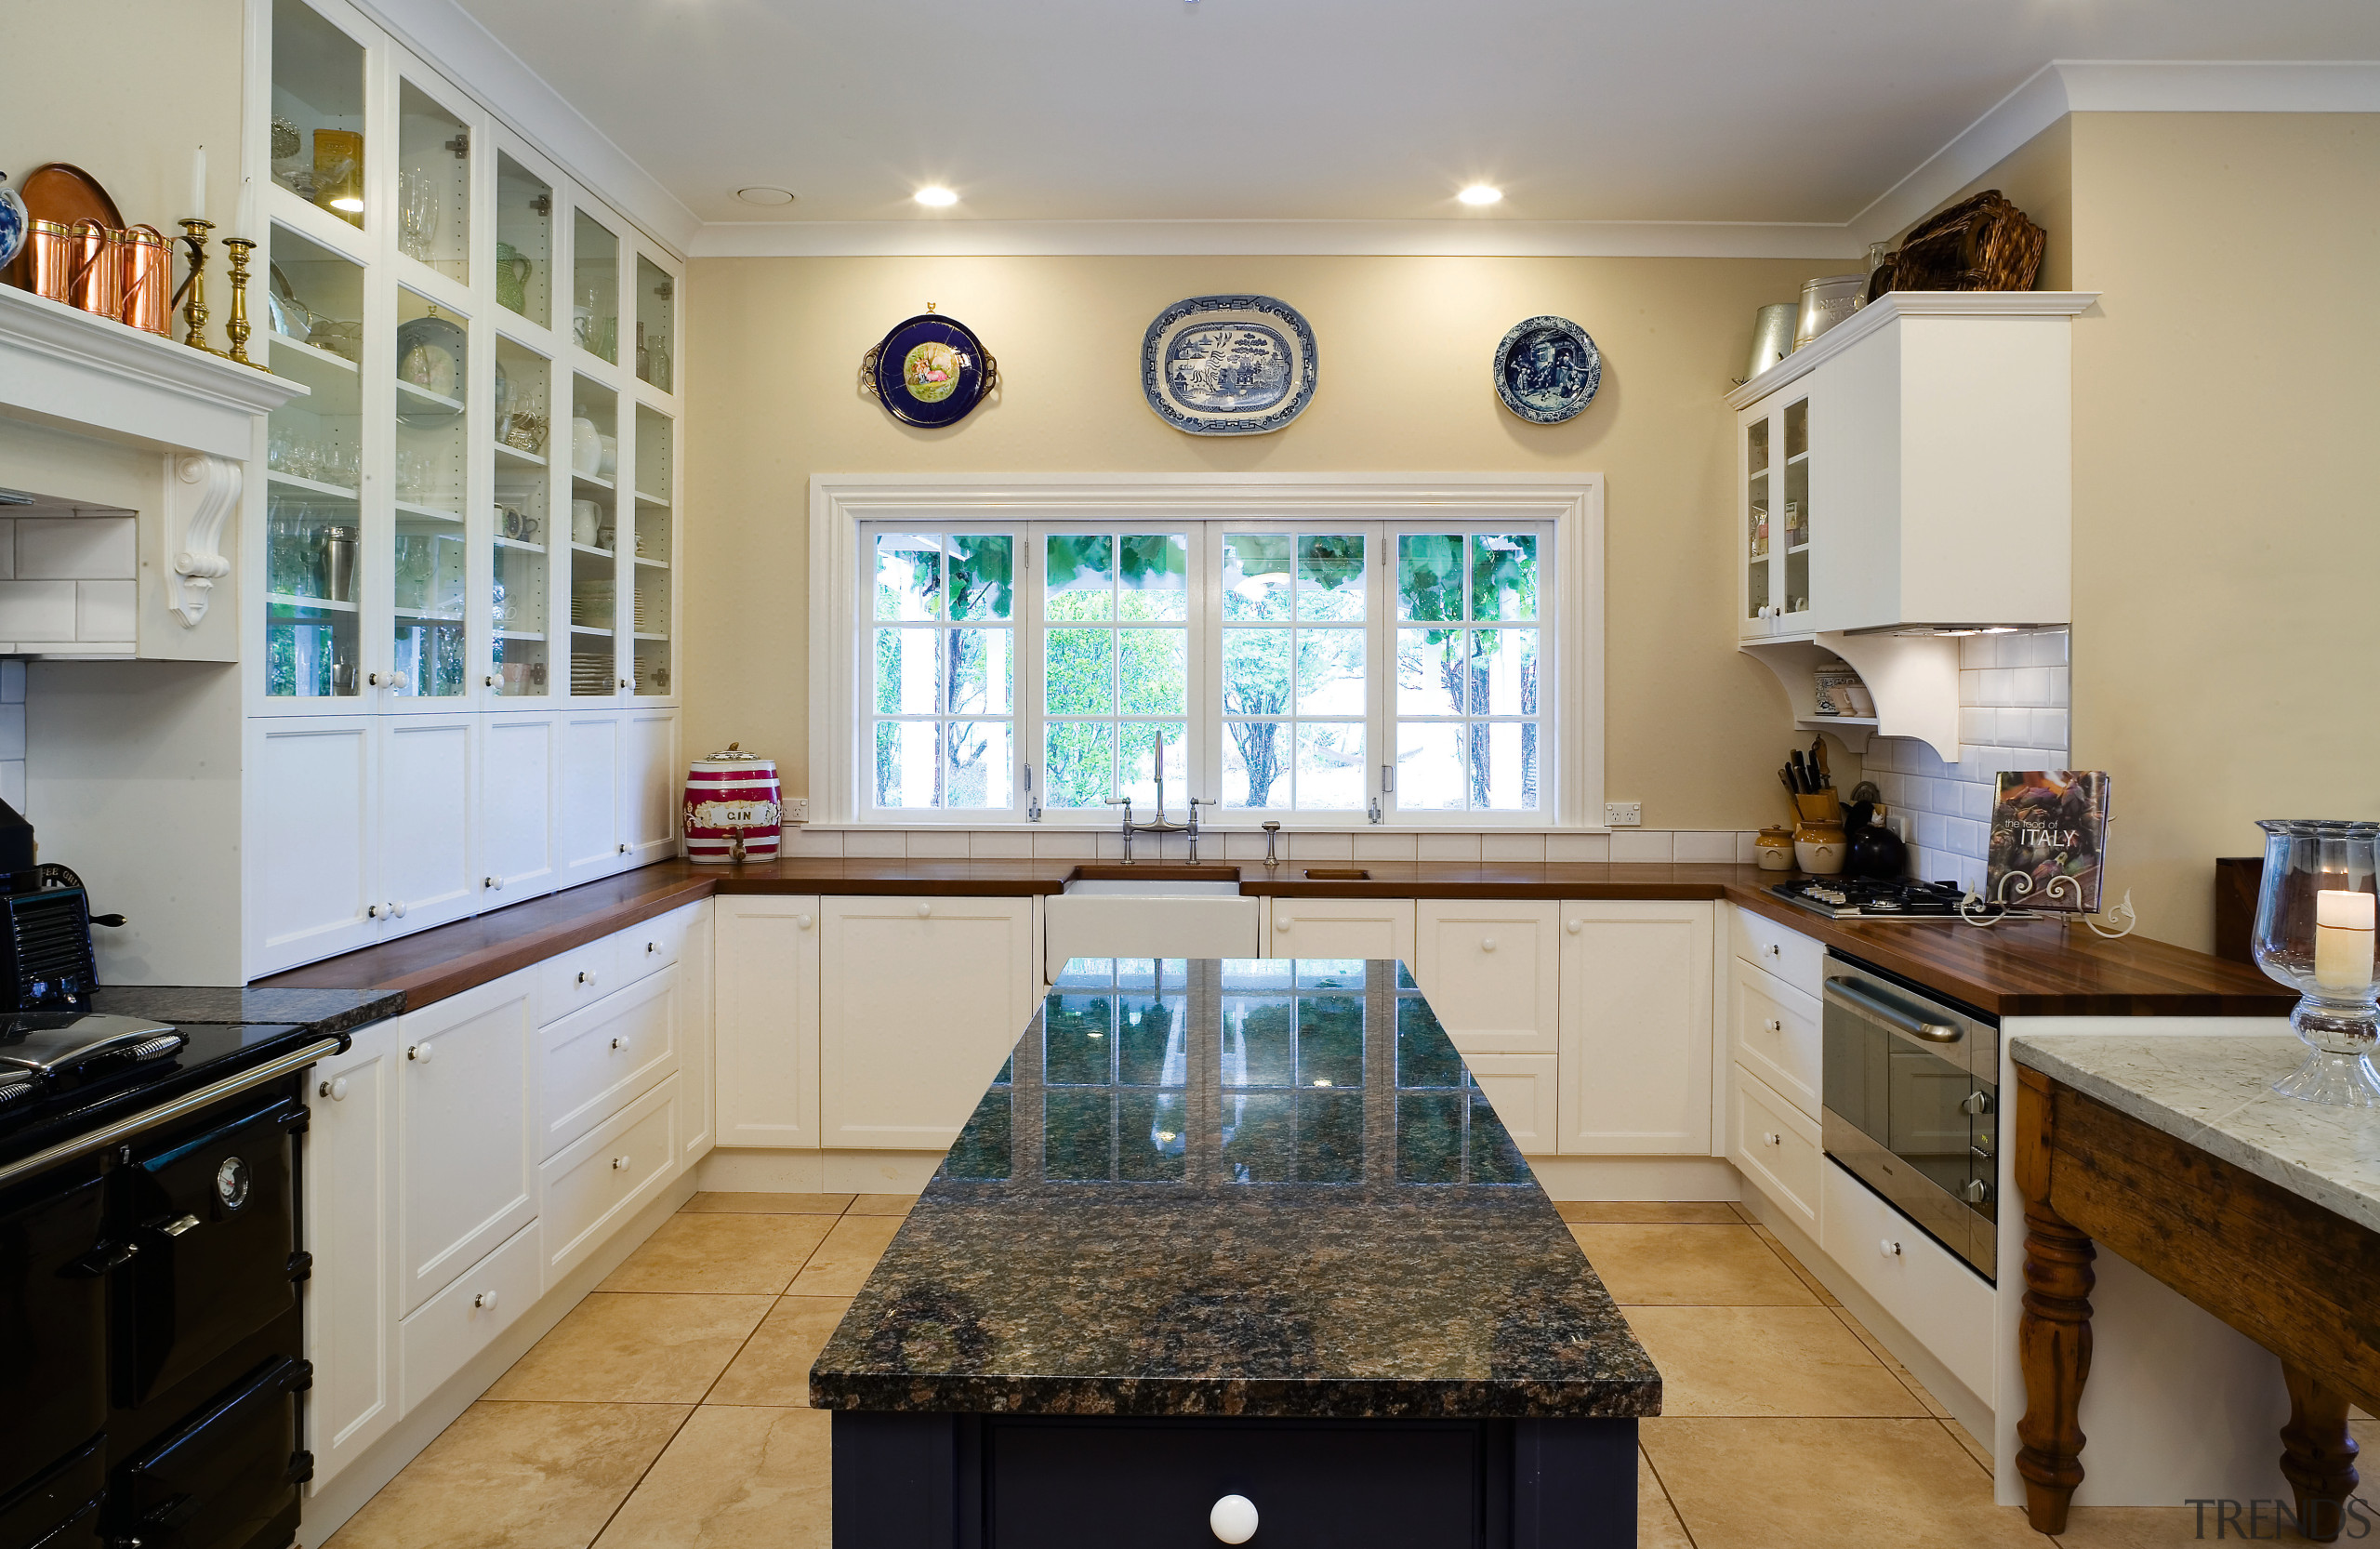 A view of this kitchen featuring tiled flooring, cabinetry, countertop, estate, home, interior design, kitchen, property, real estate, room, window, gray